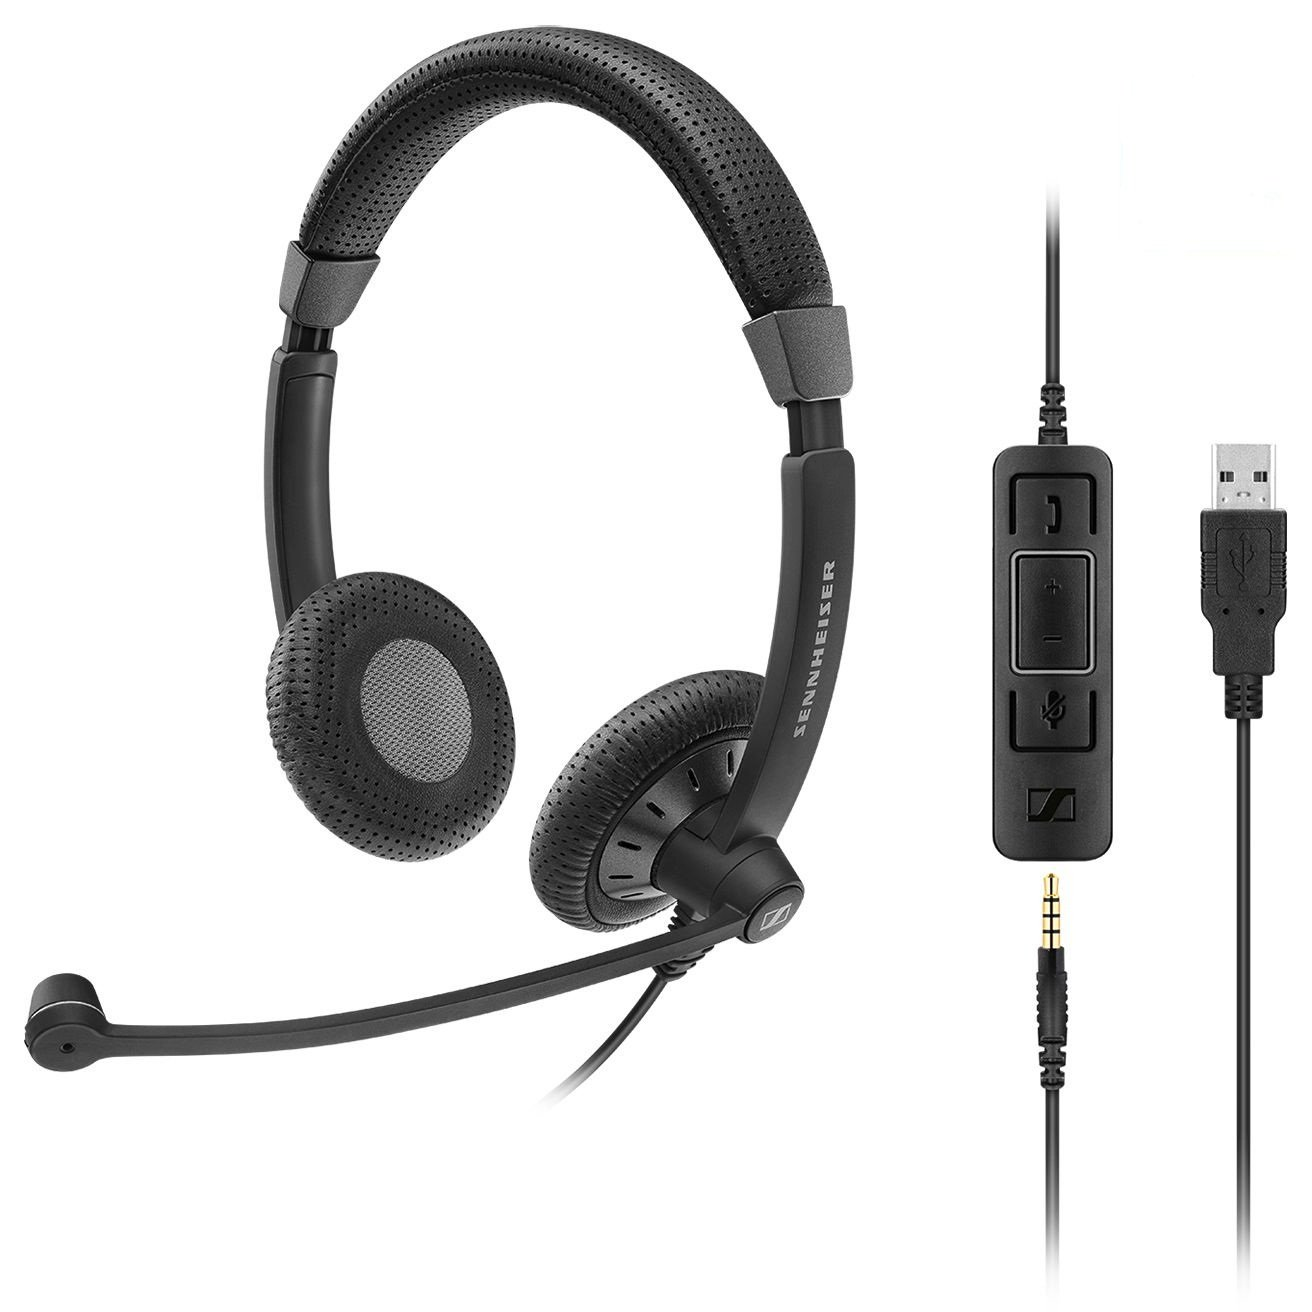 Sennheiser SC 75 USB MS Culture Plus Mobile, Double-sided, Wired Headset with both 3.5 mm Jack and USB connectivity Skype for Business Certified